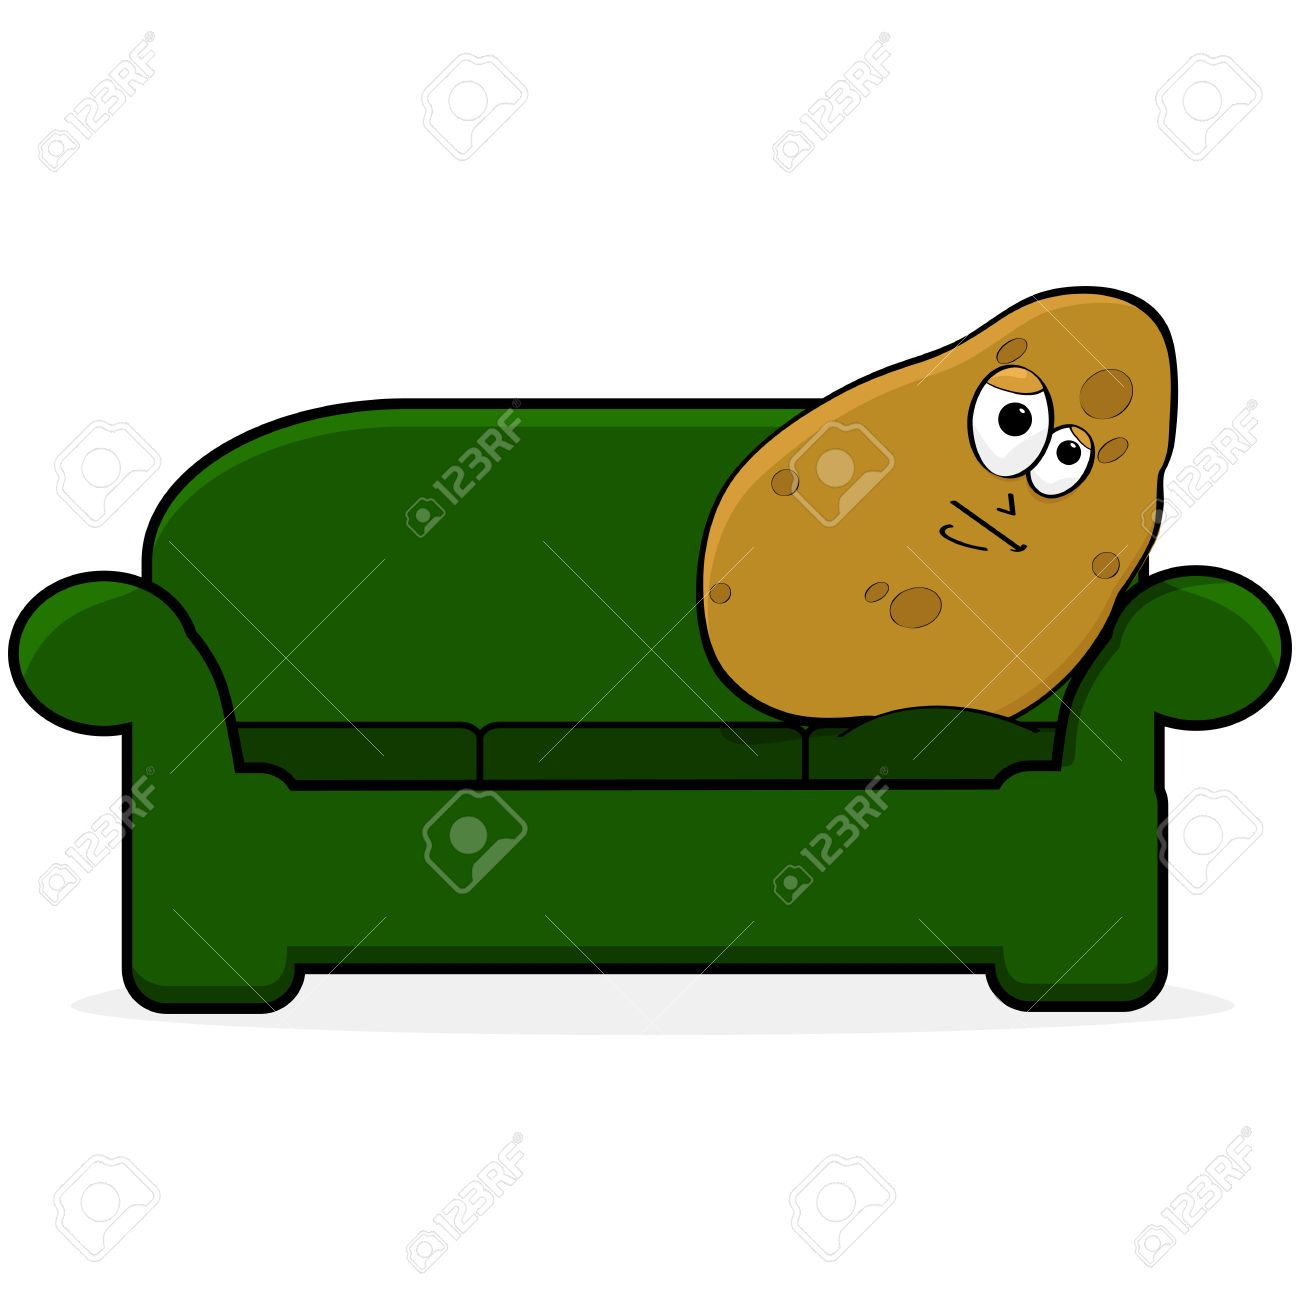 cartoon illustration showing a potato looking bored and lying